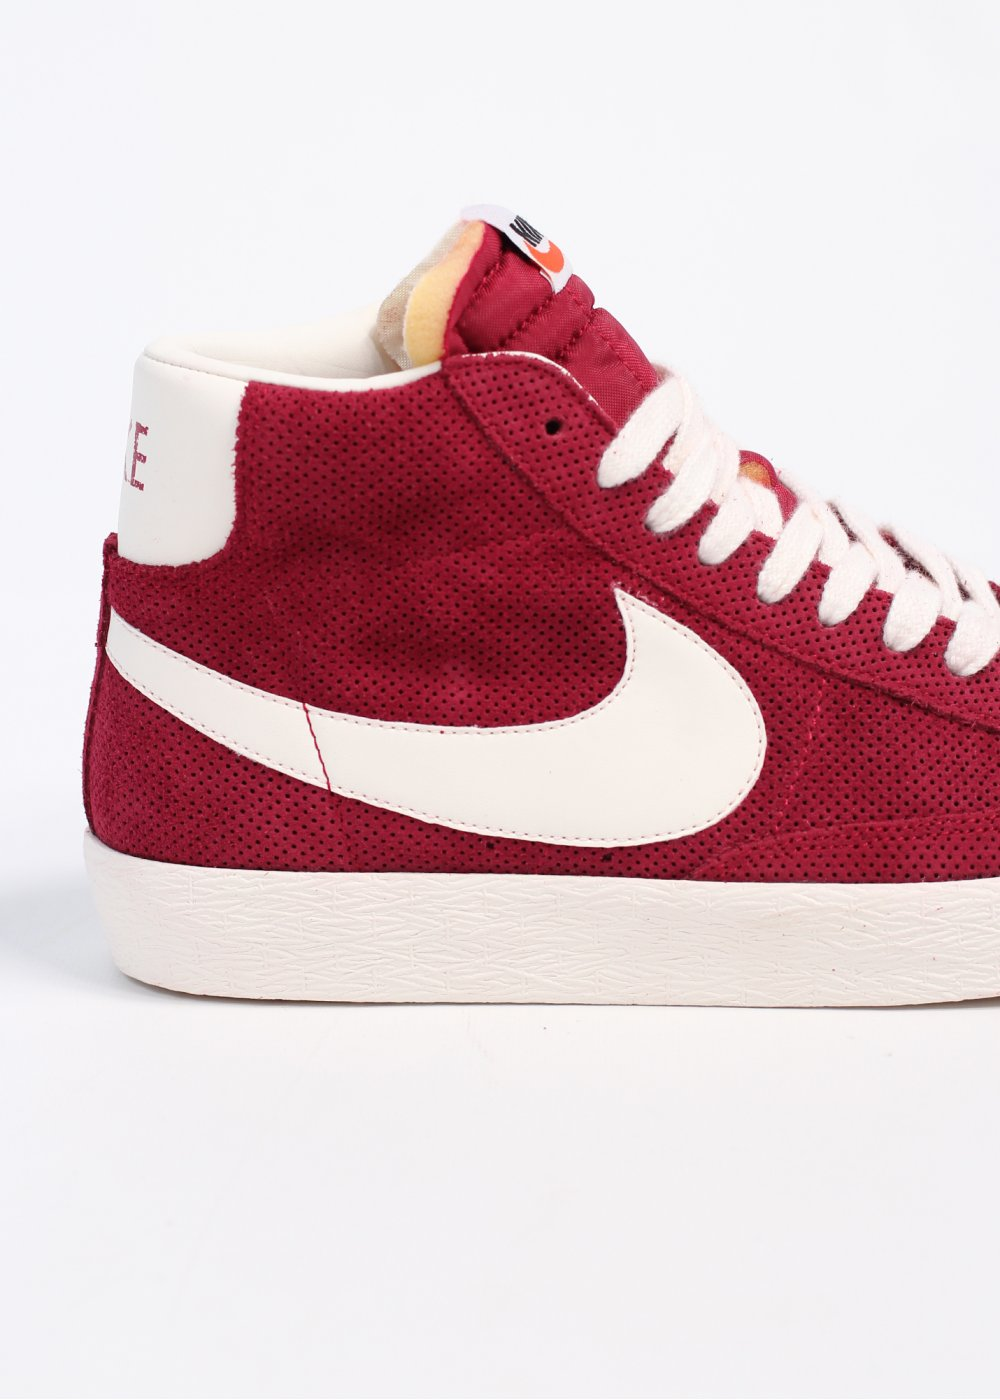 nike blazer mid suede vintage red embed. Black Bedroom Furniture Sets. Home Design Ideas